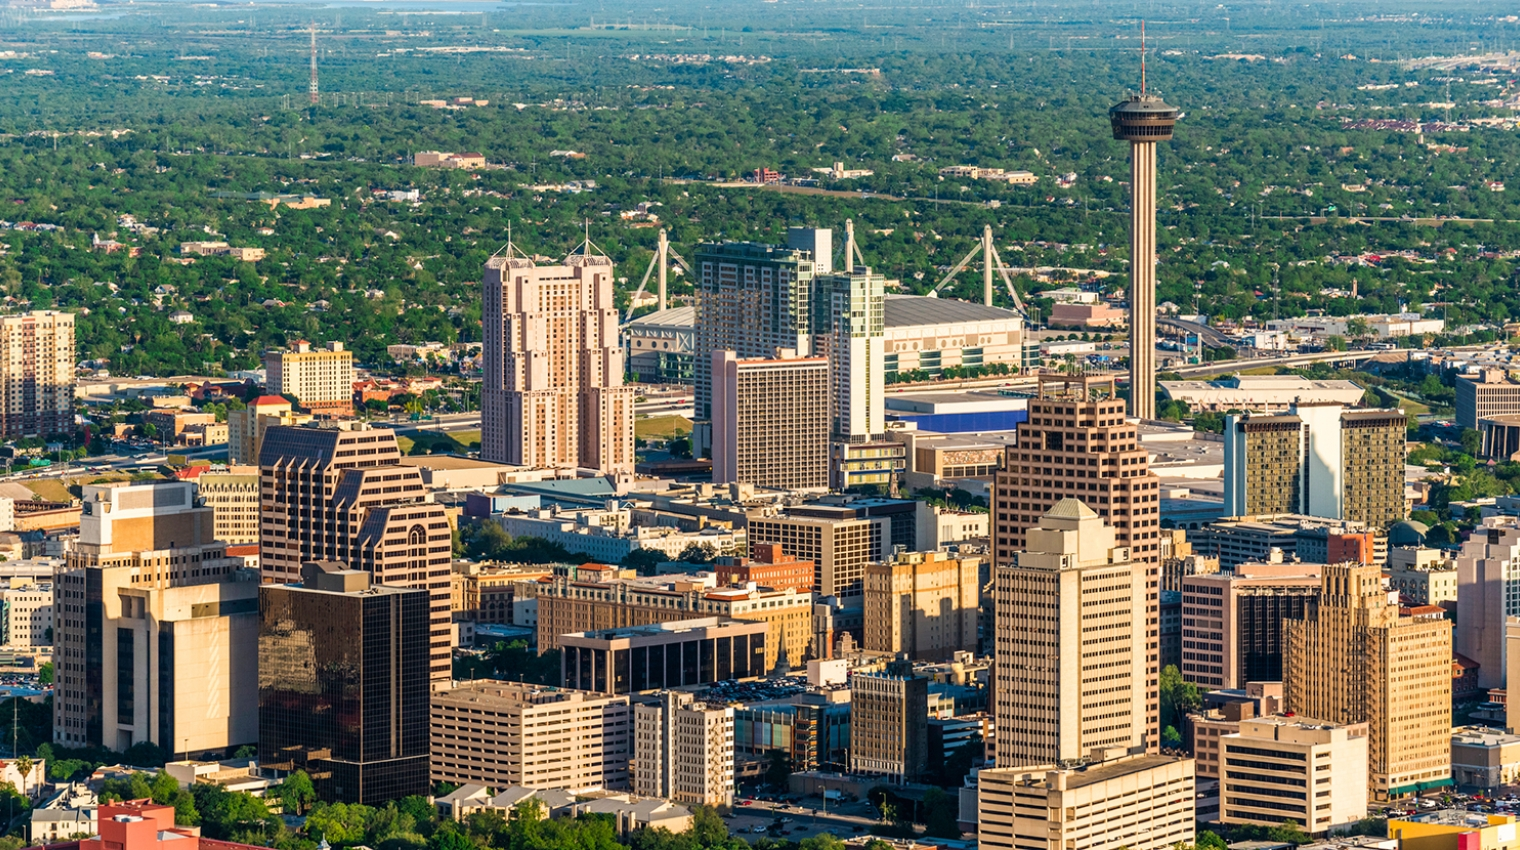 Top Hotels In San Antonio Texas